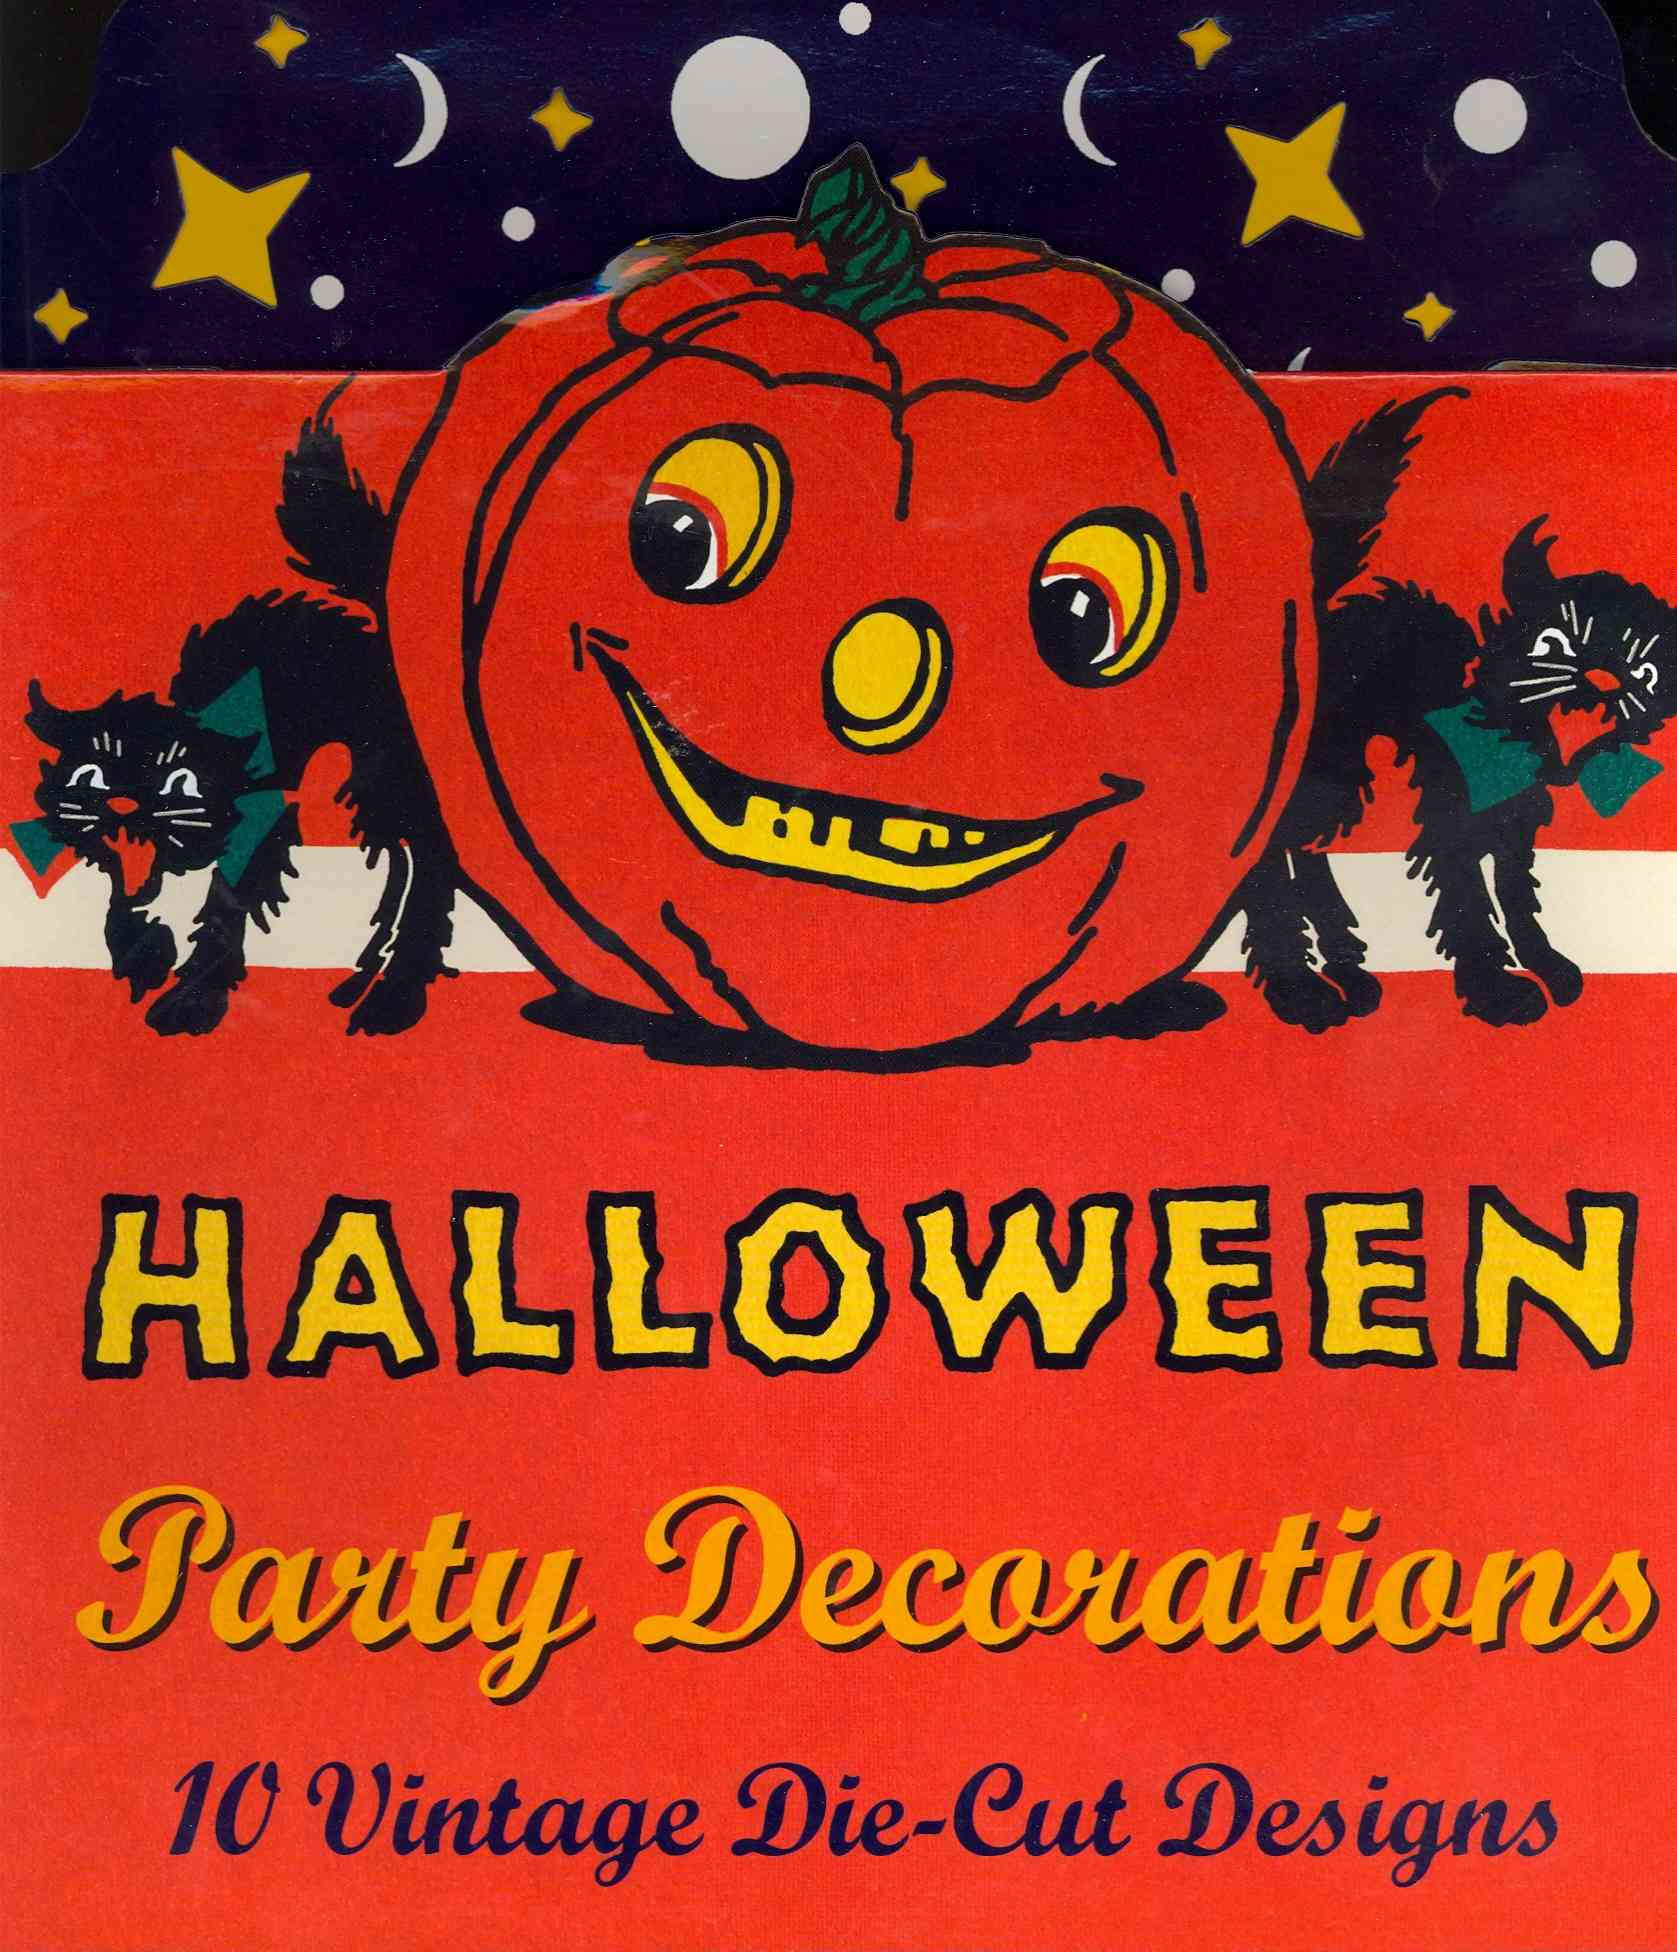 Vintage Halloween Cardboard Cutouts By Laughing Elephant Publishing (COR)/ Unknown (ILT)